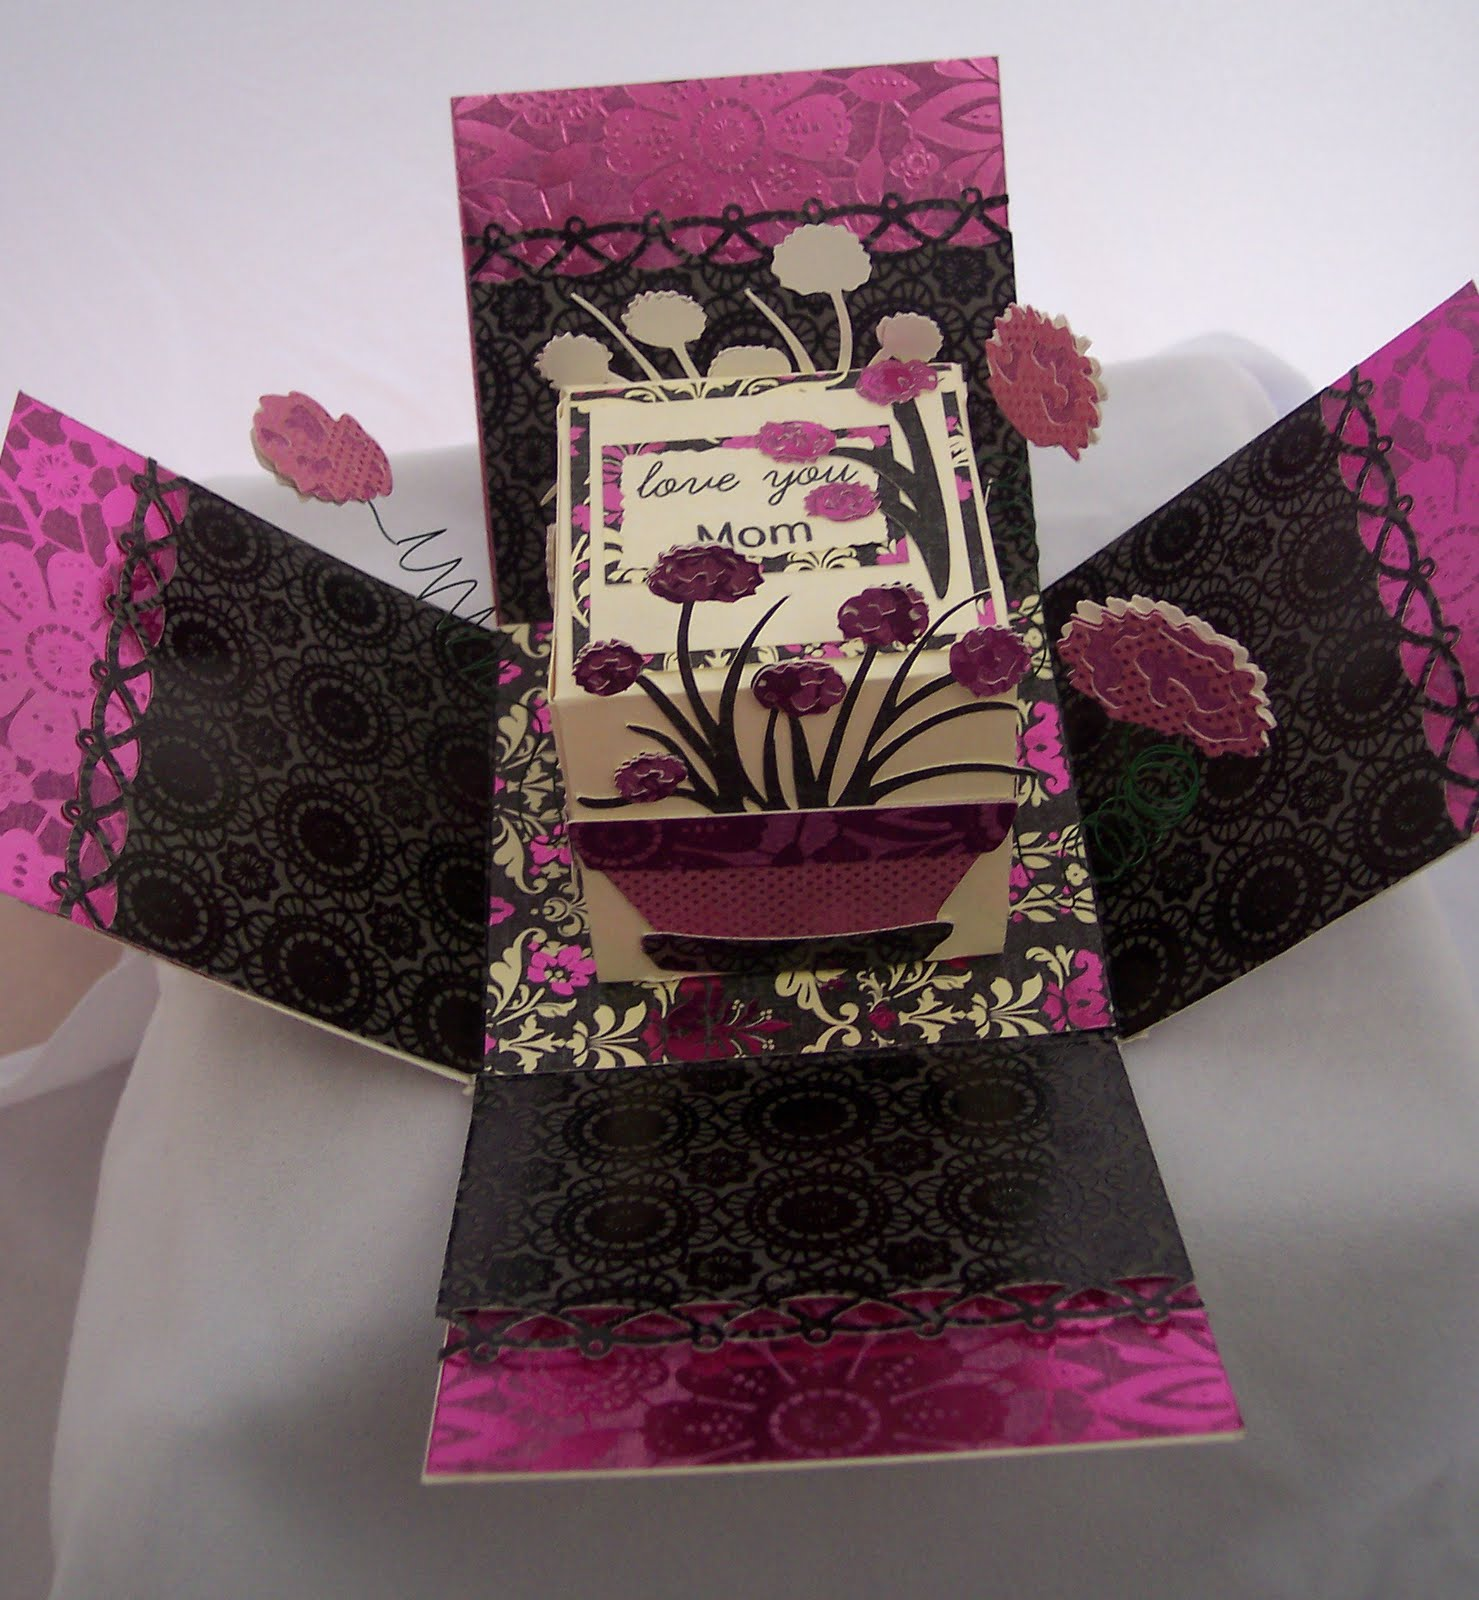 How to scrapbook a box - Photo Explosion Box